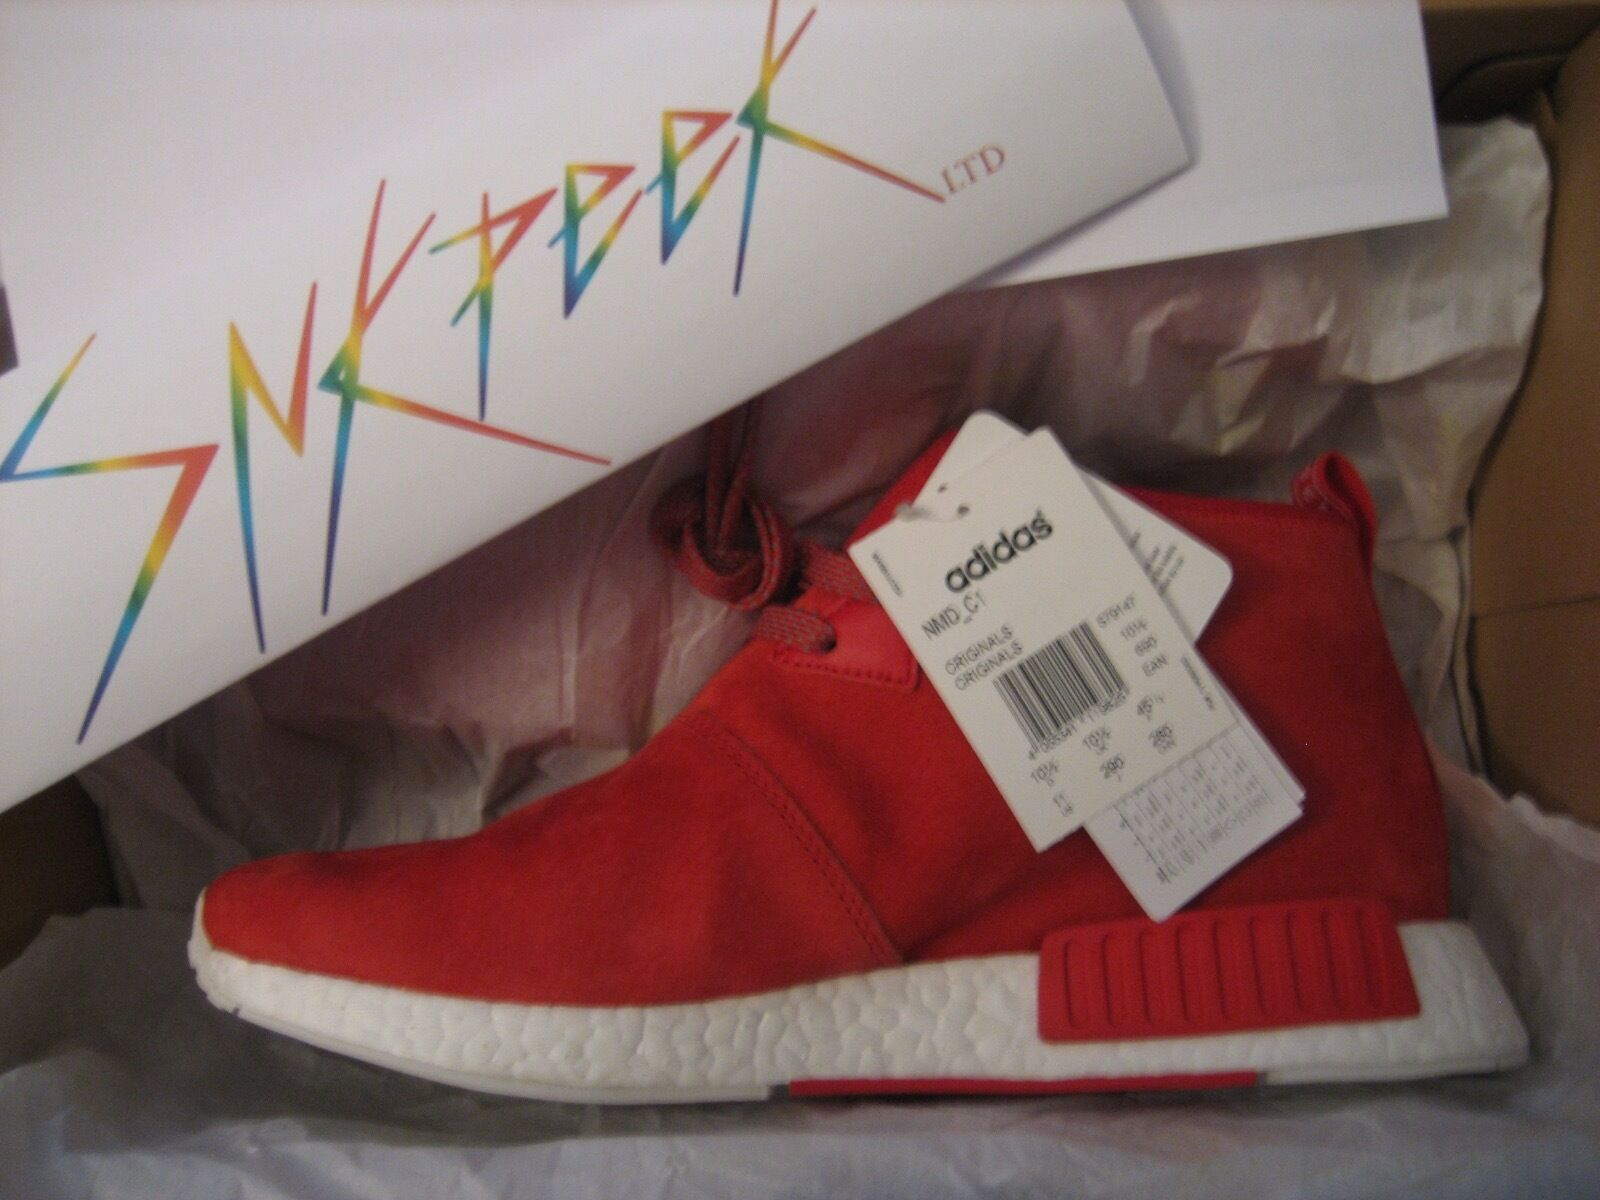 New  Adidas NMD C1 Chukka Lush Red Red Red S79147 Nomad Boost w Receipt Rare DS  a48e6d